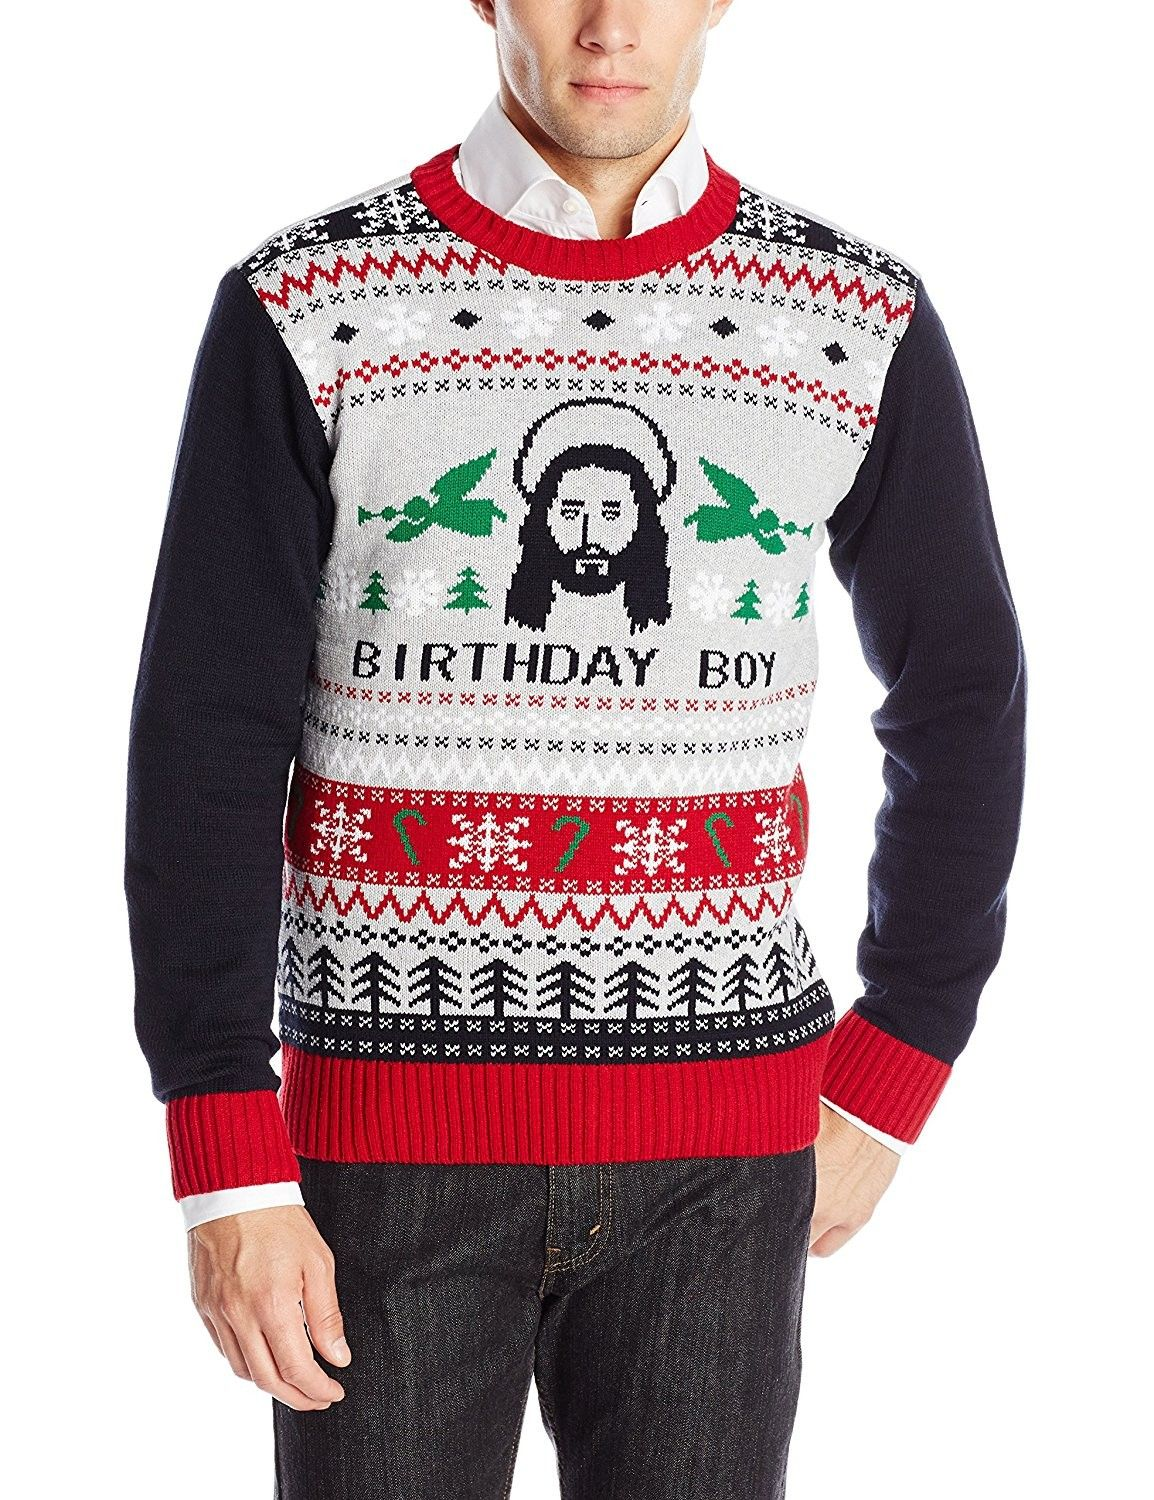 99e3f70dc2 Men's Clothing, Sweaters, Pullovers, Ugly Christmas Sweater Men's Jesus  B-Day Sweater - Silver Heather - CQ1254PT963 #men #fashion #style #shopping  #outfits ...